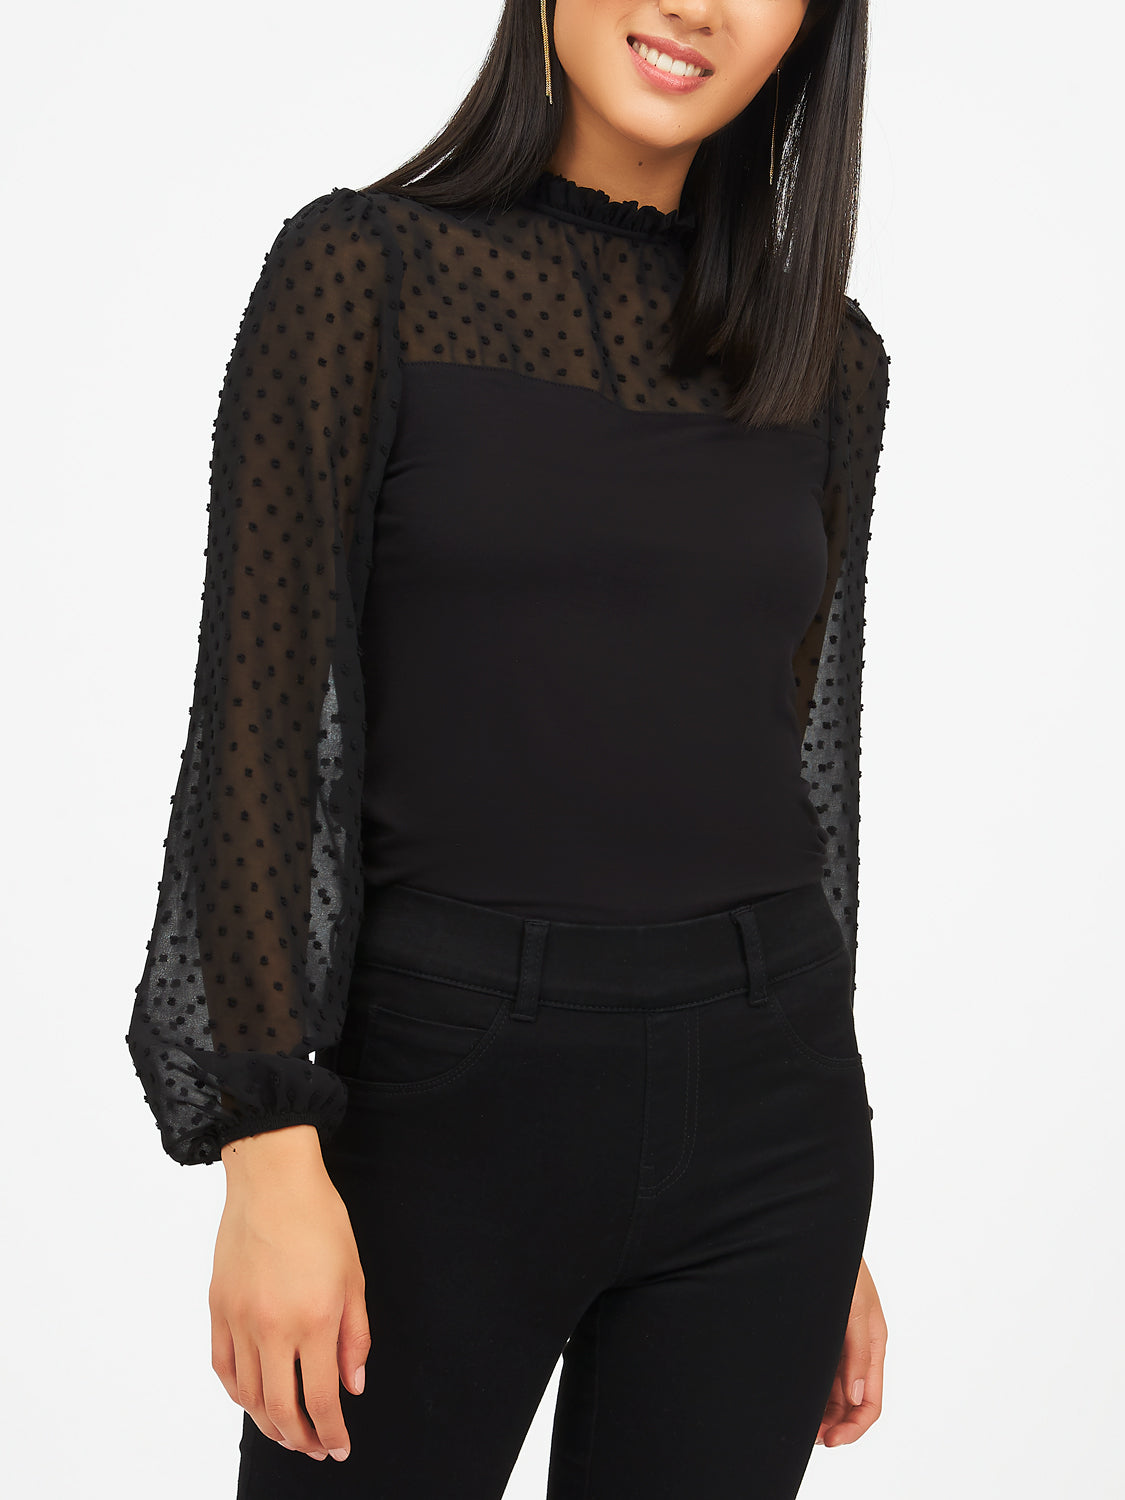 Swiss Dot Chiffon And Yoke Mesh Blouse